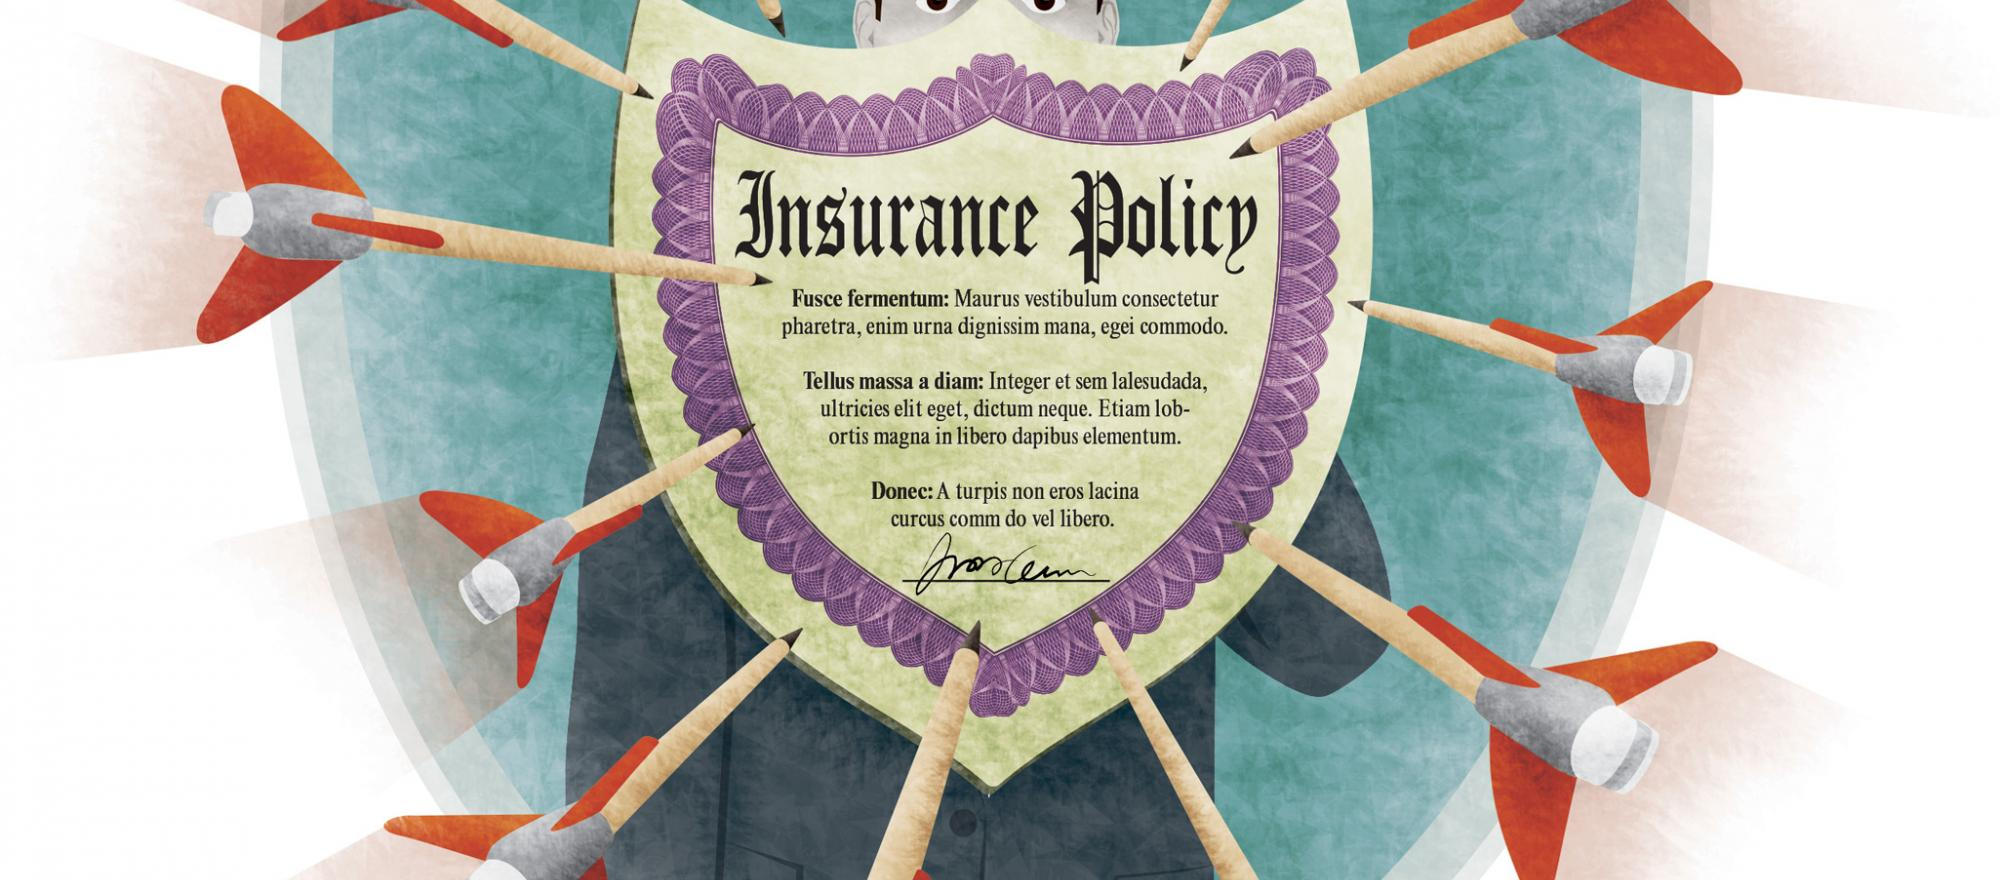 A charter or fractional provider's insurance can cause problems for customers. (Illustration: John Lewis)